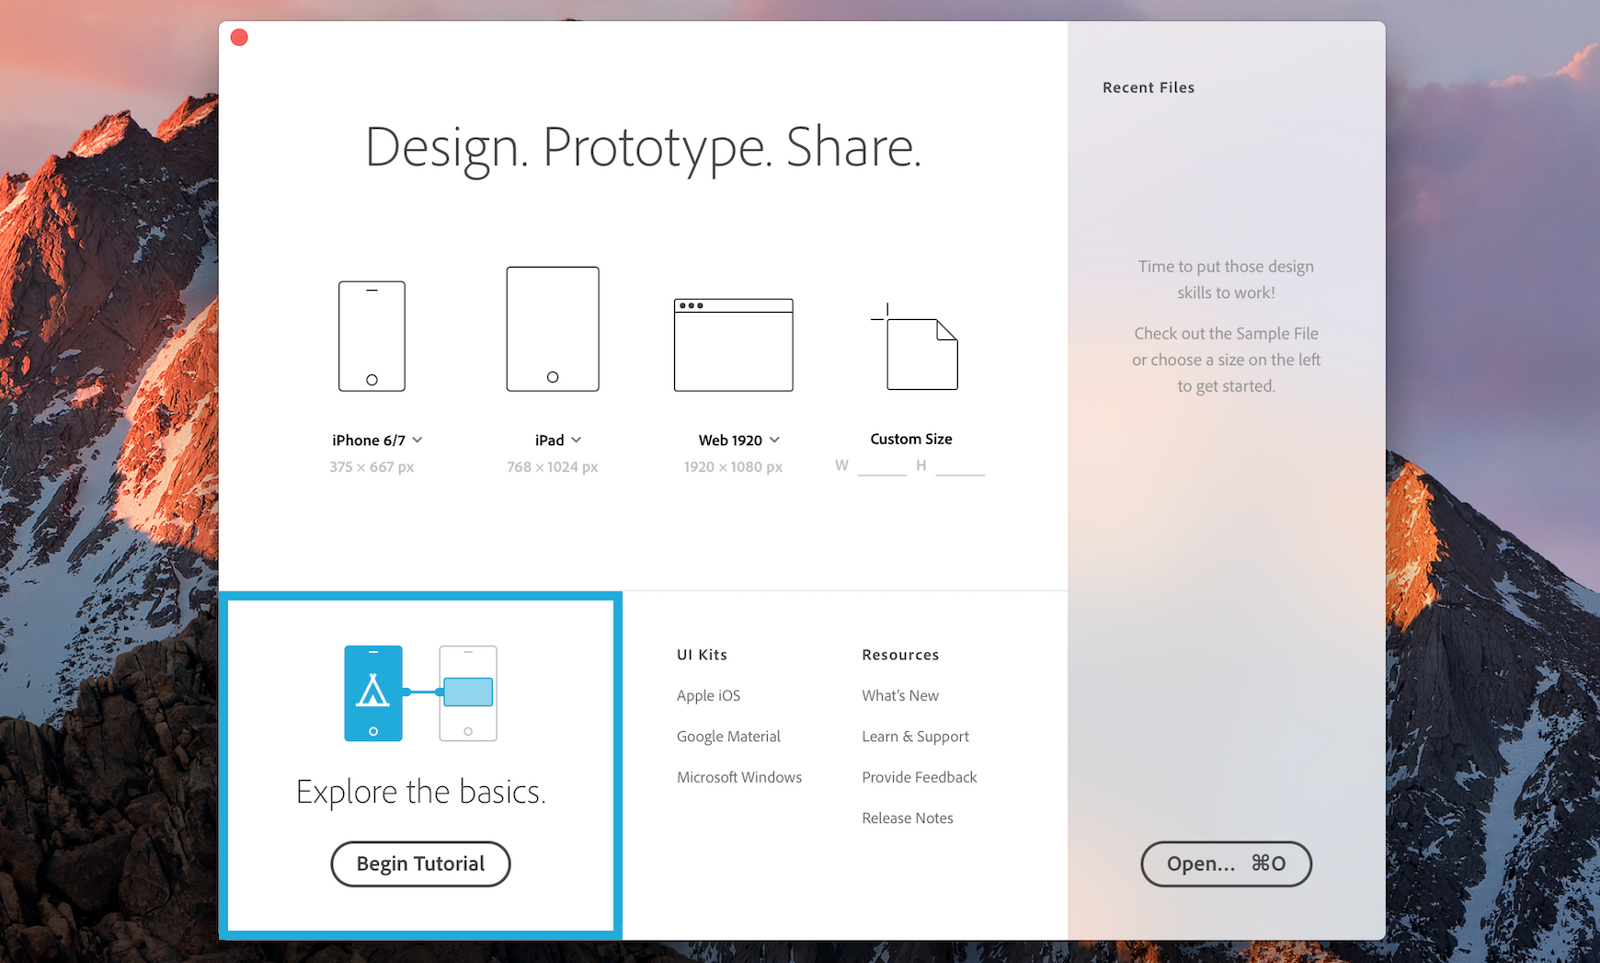 Explore the basics, by Adobe XD